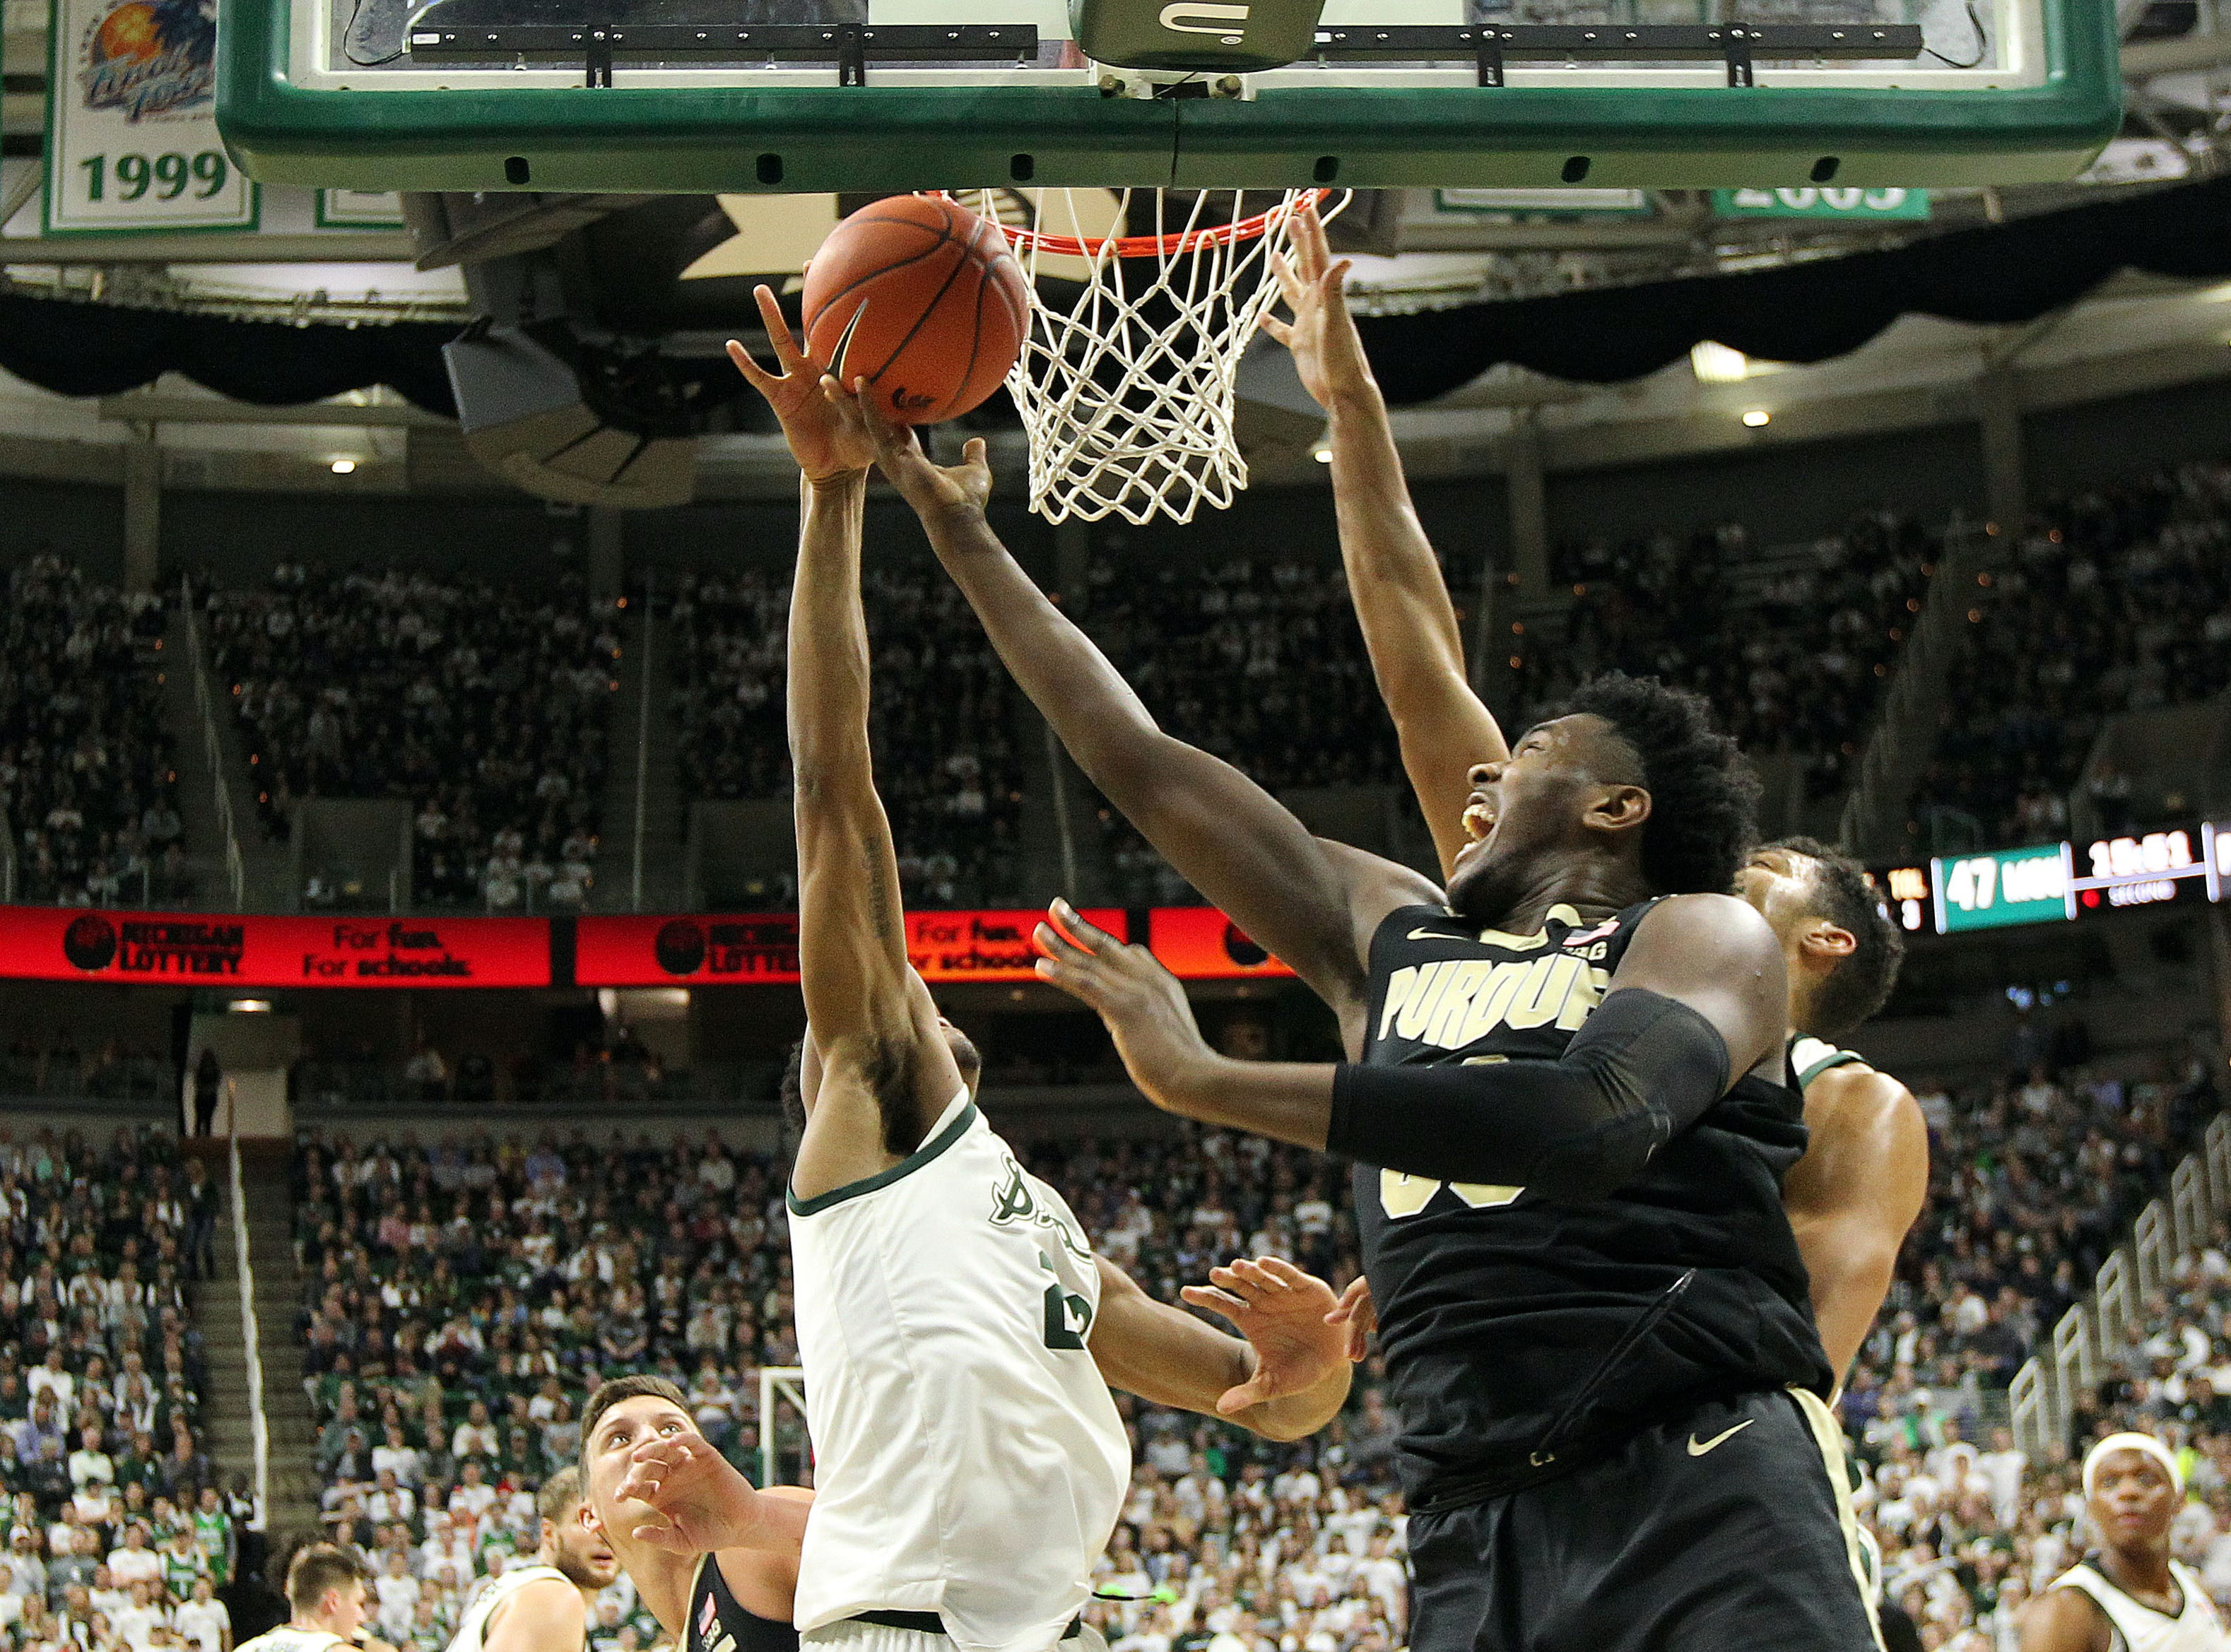 Jan 8, 2019; East Lansing, MI, USA; Purdue Boilermakers forward Trevion Williams (50) shoots against Michigan State Spartans forward Kenny Goins (25) during the second half at the Breslin Center. Mandatory Credit: Mike Carter-USA TODAY Sports